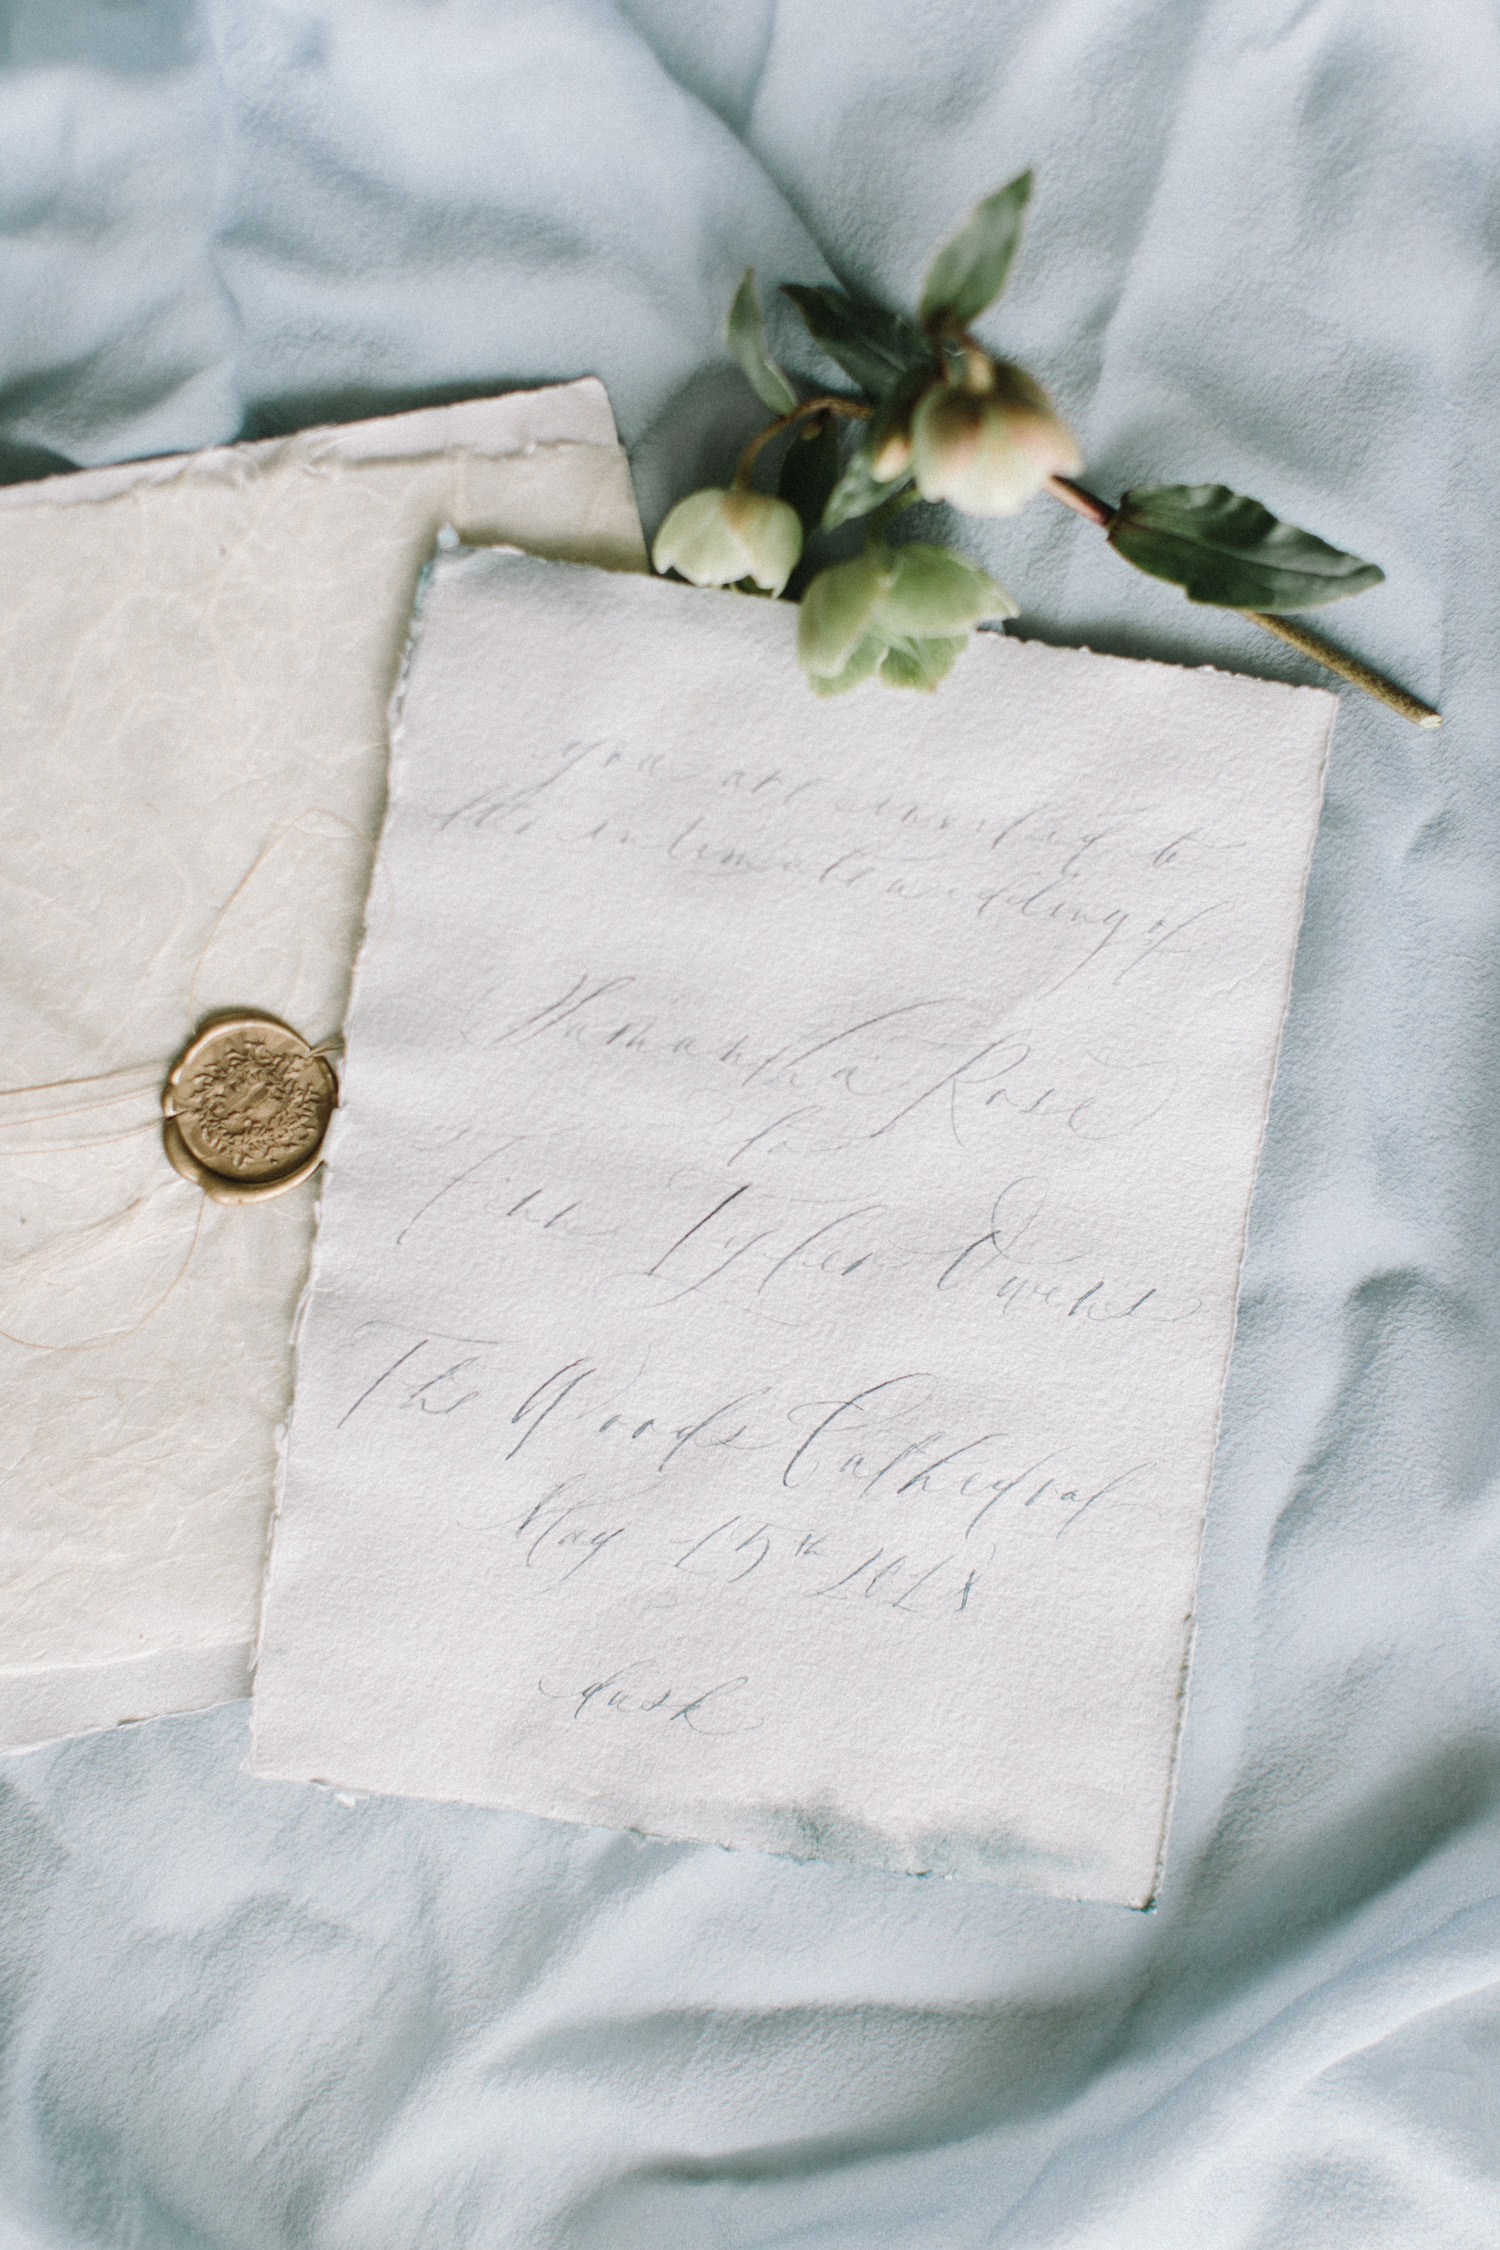 A blue handmade paper and calligraphy wedding invitation with a gold wax seal rests on light blue silk at a destination wedding